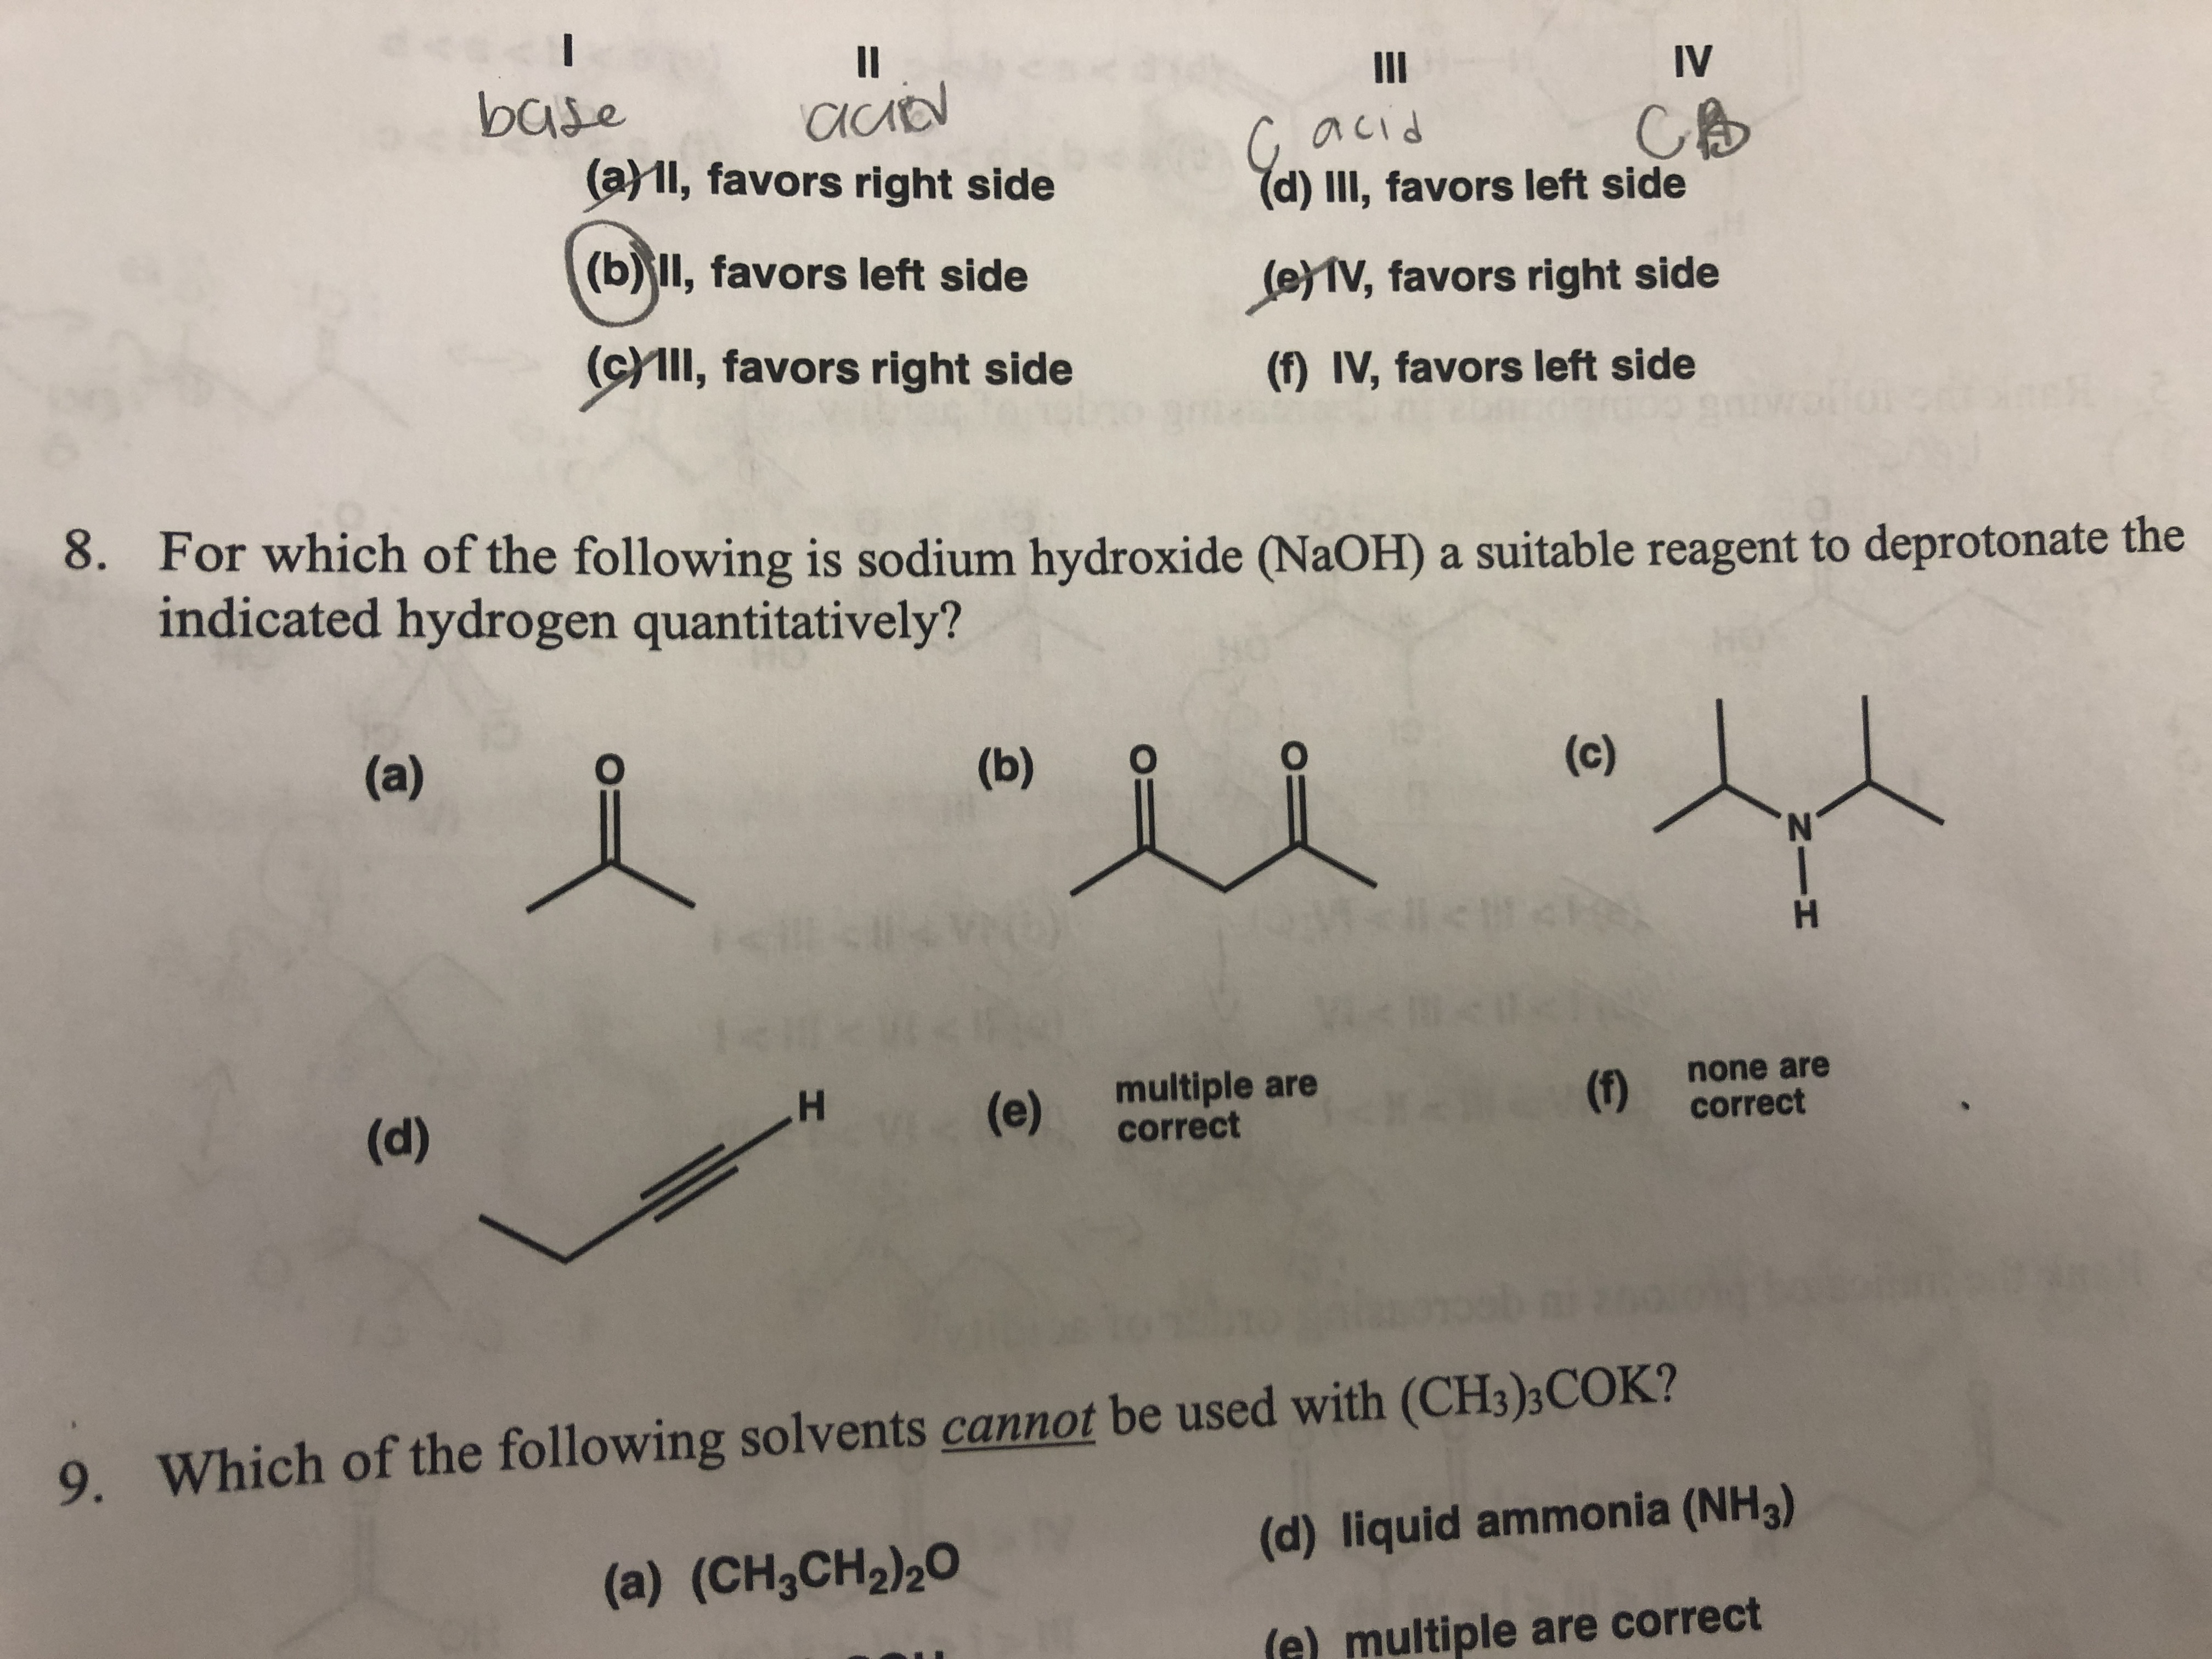 H HIN ds II II IV base (a1l, favors right side acid (d) III, favors left side (b)ll, favors left side (eV, favors right side (cYl, favors right side (f) IV, favors left side 8. For which of the following is sodium hydroxide (NaOH) a suitable reagent to deprotonate the indicated hydrogen quantitatively? (a) (b) (c) multiple are correct none are (d) (e) (1) correct Which of the following solvents cannot be used with (CH3)3COK? (d) liquid ammonia (NH3) 9. (a) (CH3CH2)20 iple are correct